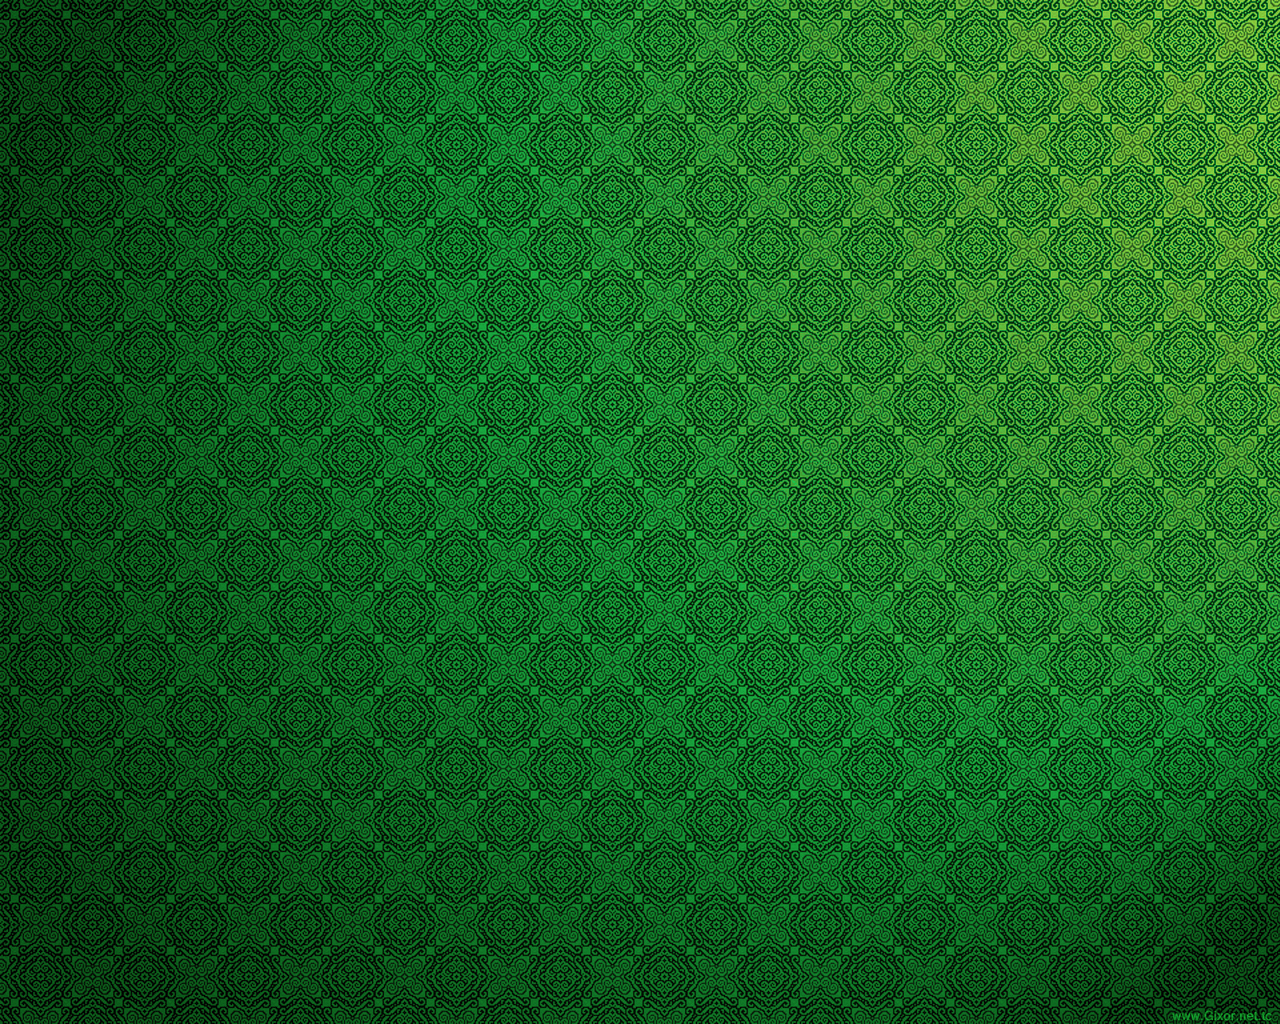 Desktop Wallpaper – Desktop Hd Wallpapers: hddesktopwallpaperblog.blogspot.com/2012/06/green-wallpaper.html